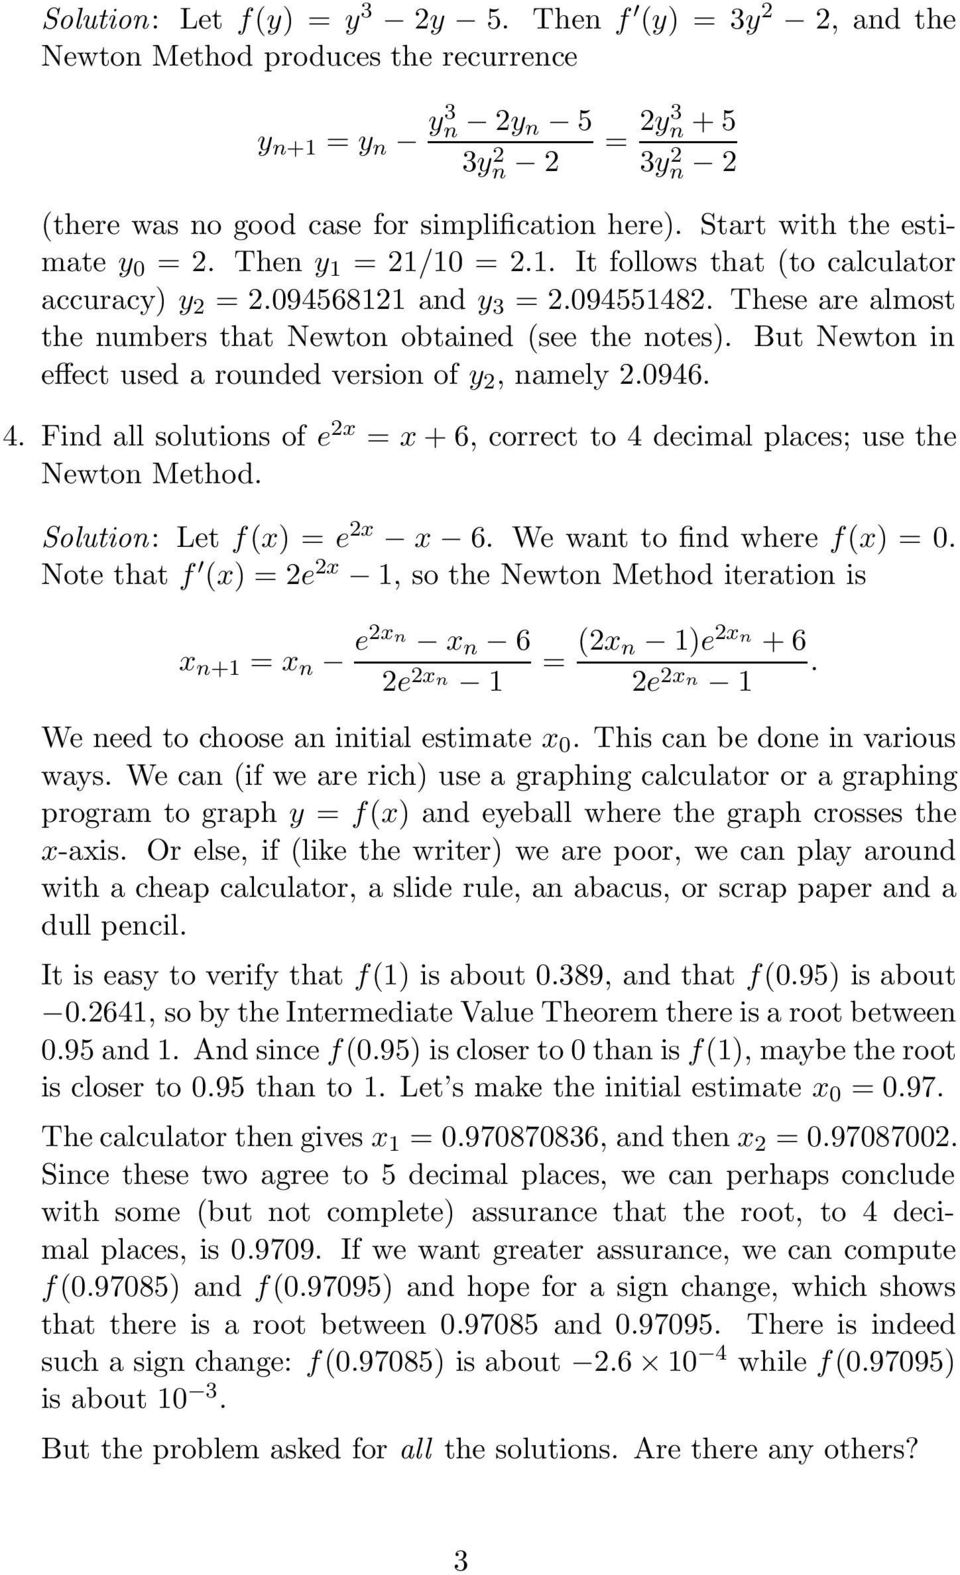 Solutions to Problems on the Newton-Raphson Method - PDF